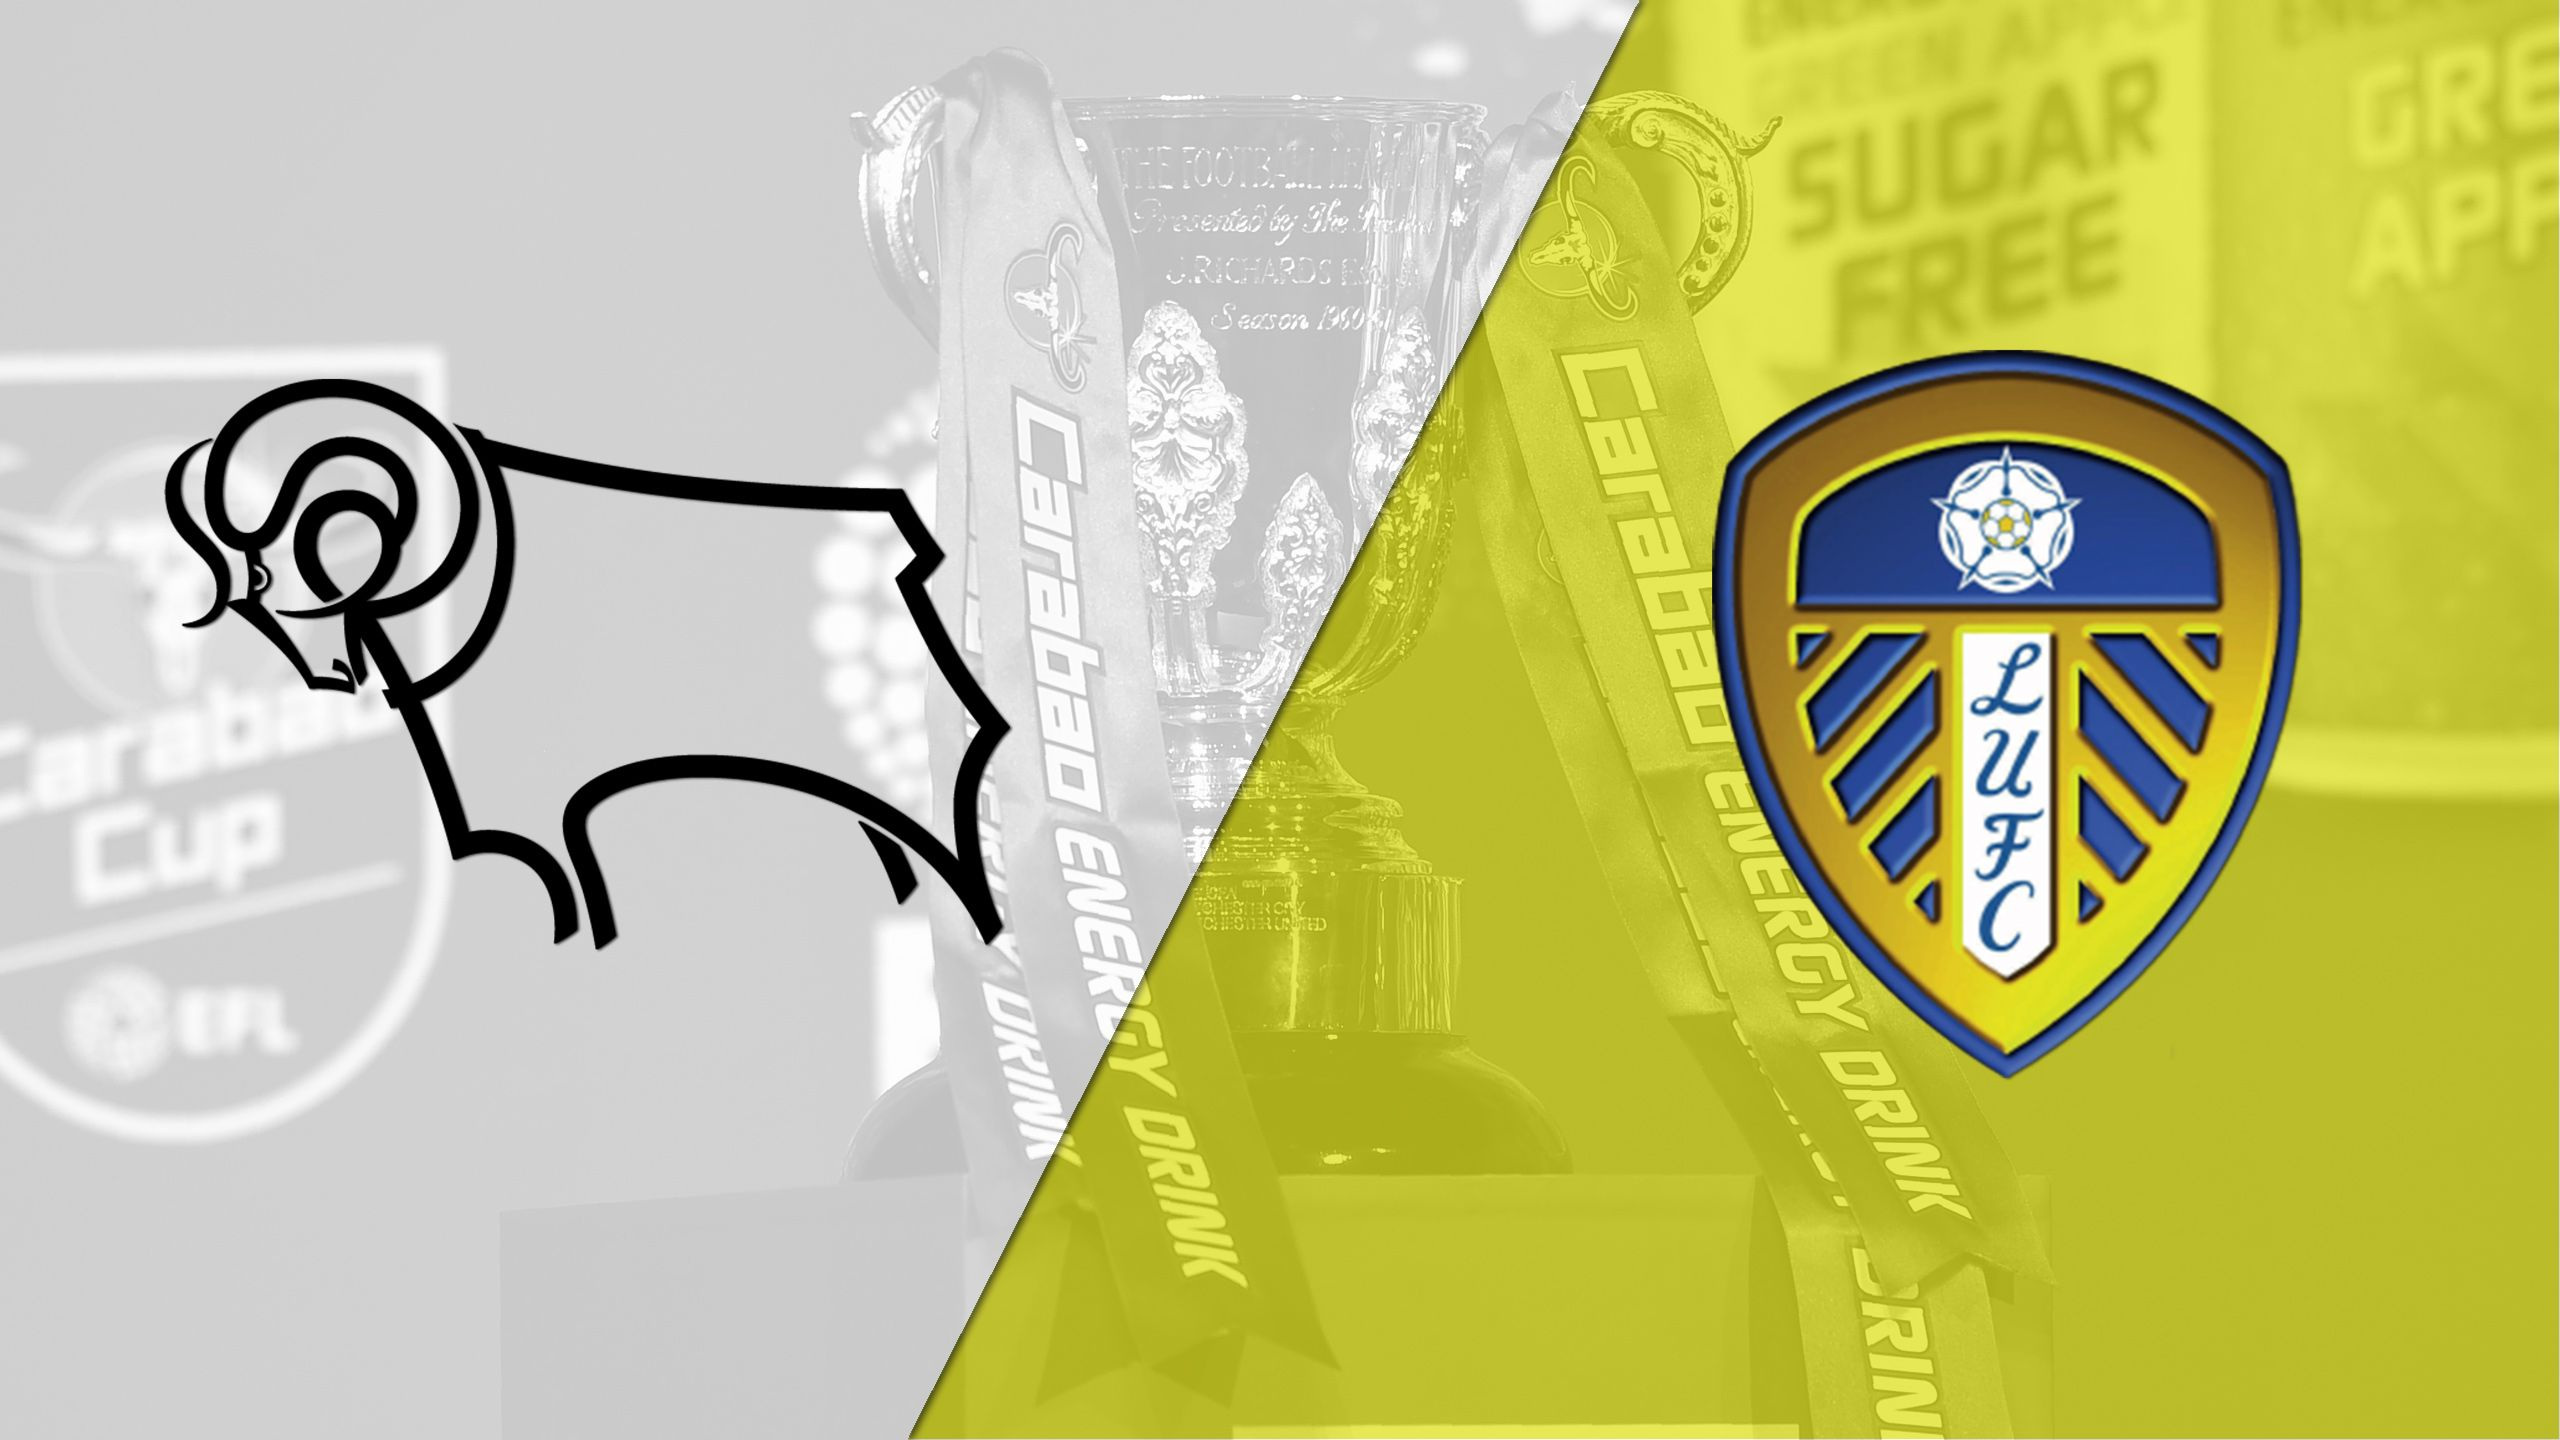 Derby County vs. Leeds United (English League Championship)